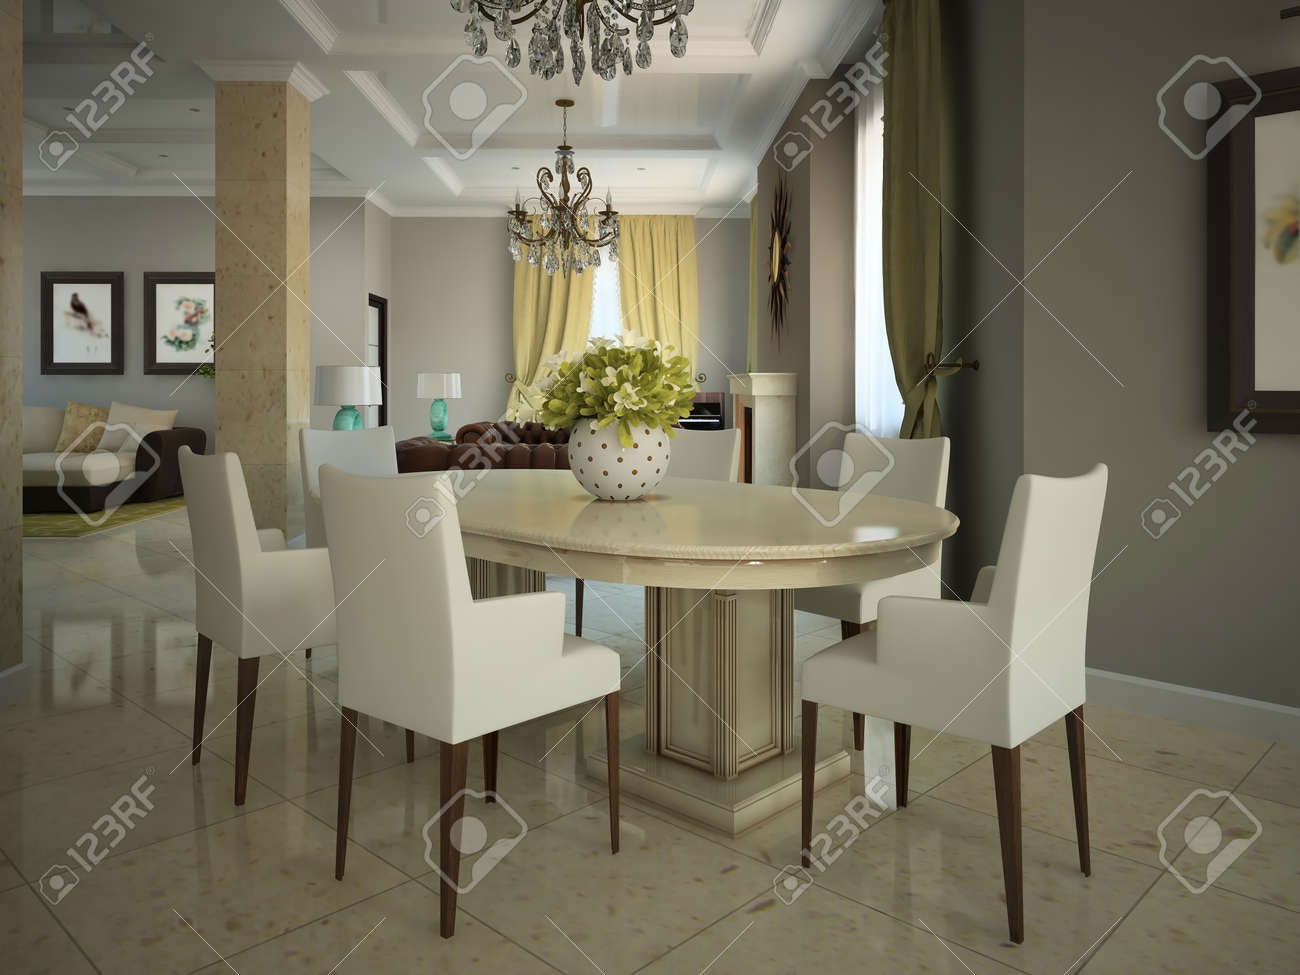 Modern country dining room - Dining Room In The Modern Country House 3d Stock Photo 11890970